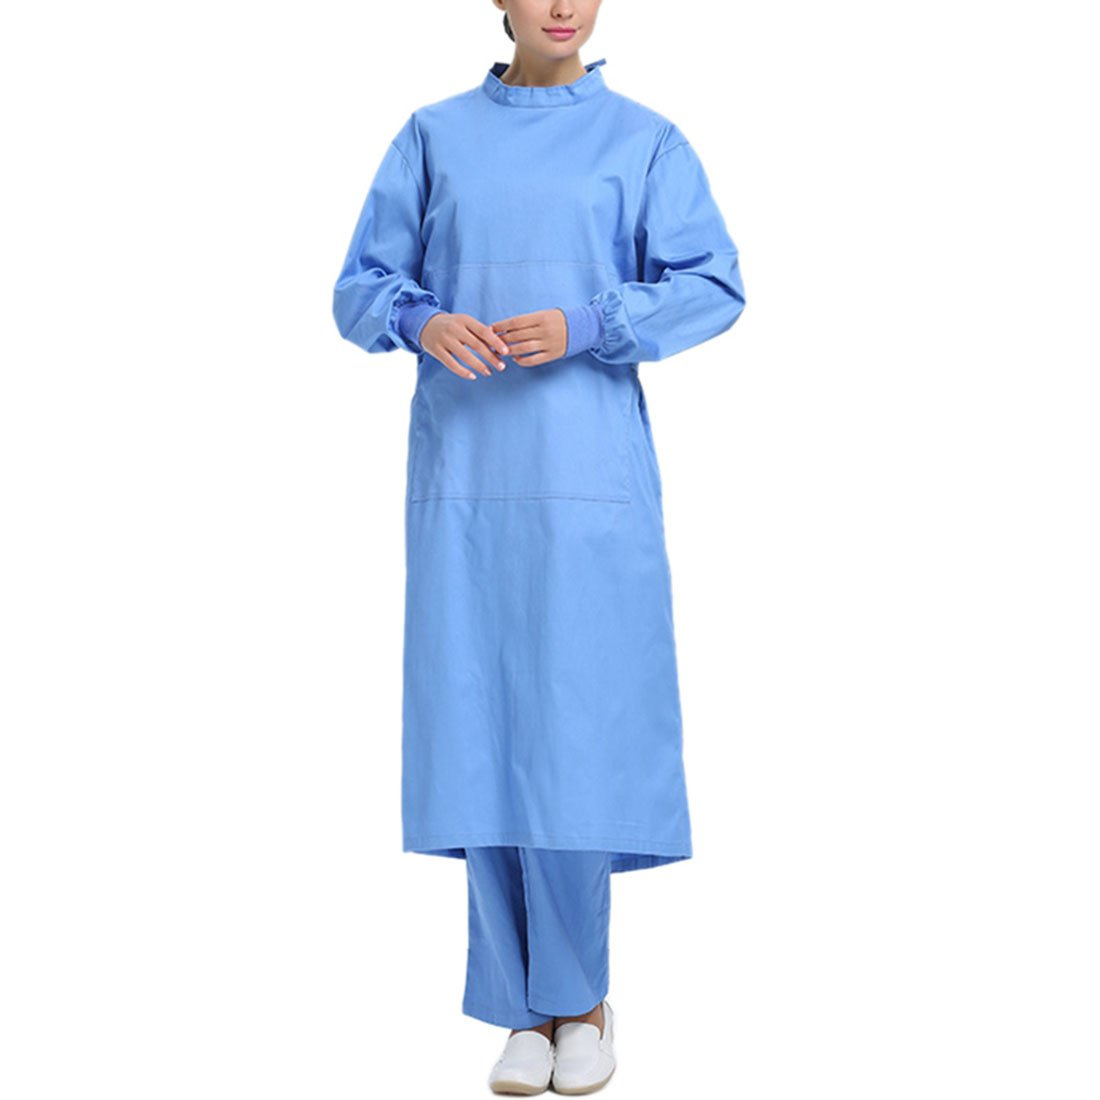 Pinji Surgical Gown Semi-coated Cotton Surgical Clothes High Temperature Resistance Workwear for Hospital Blue(Women) L